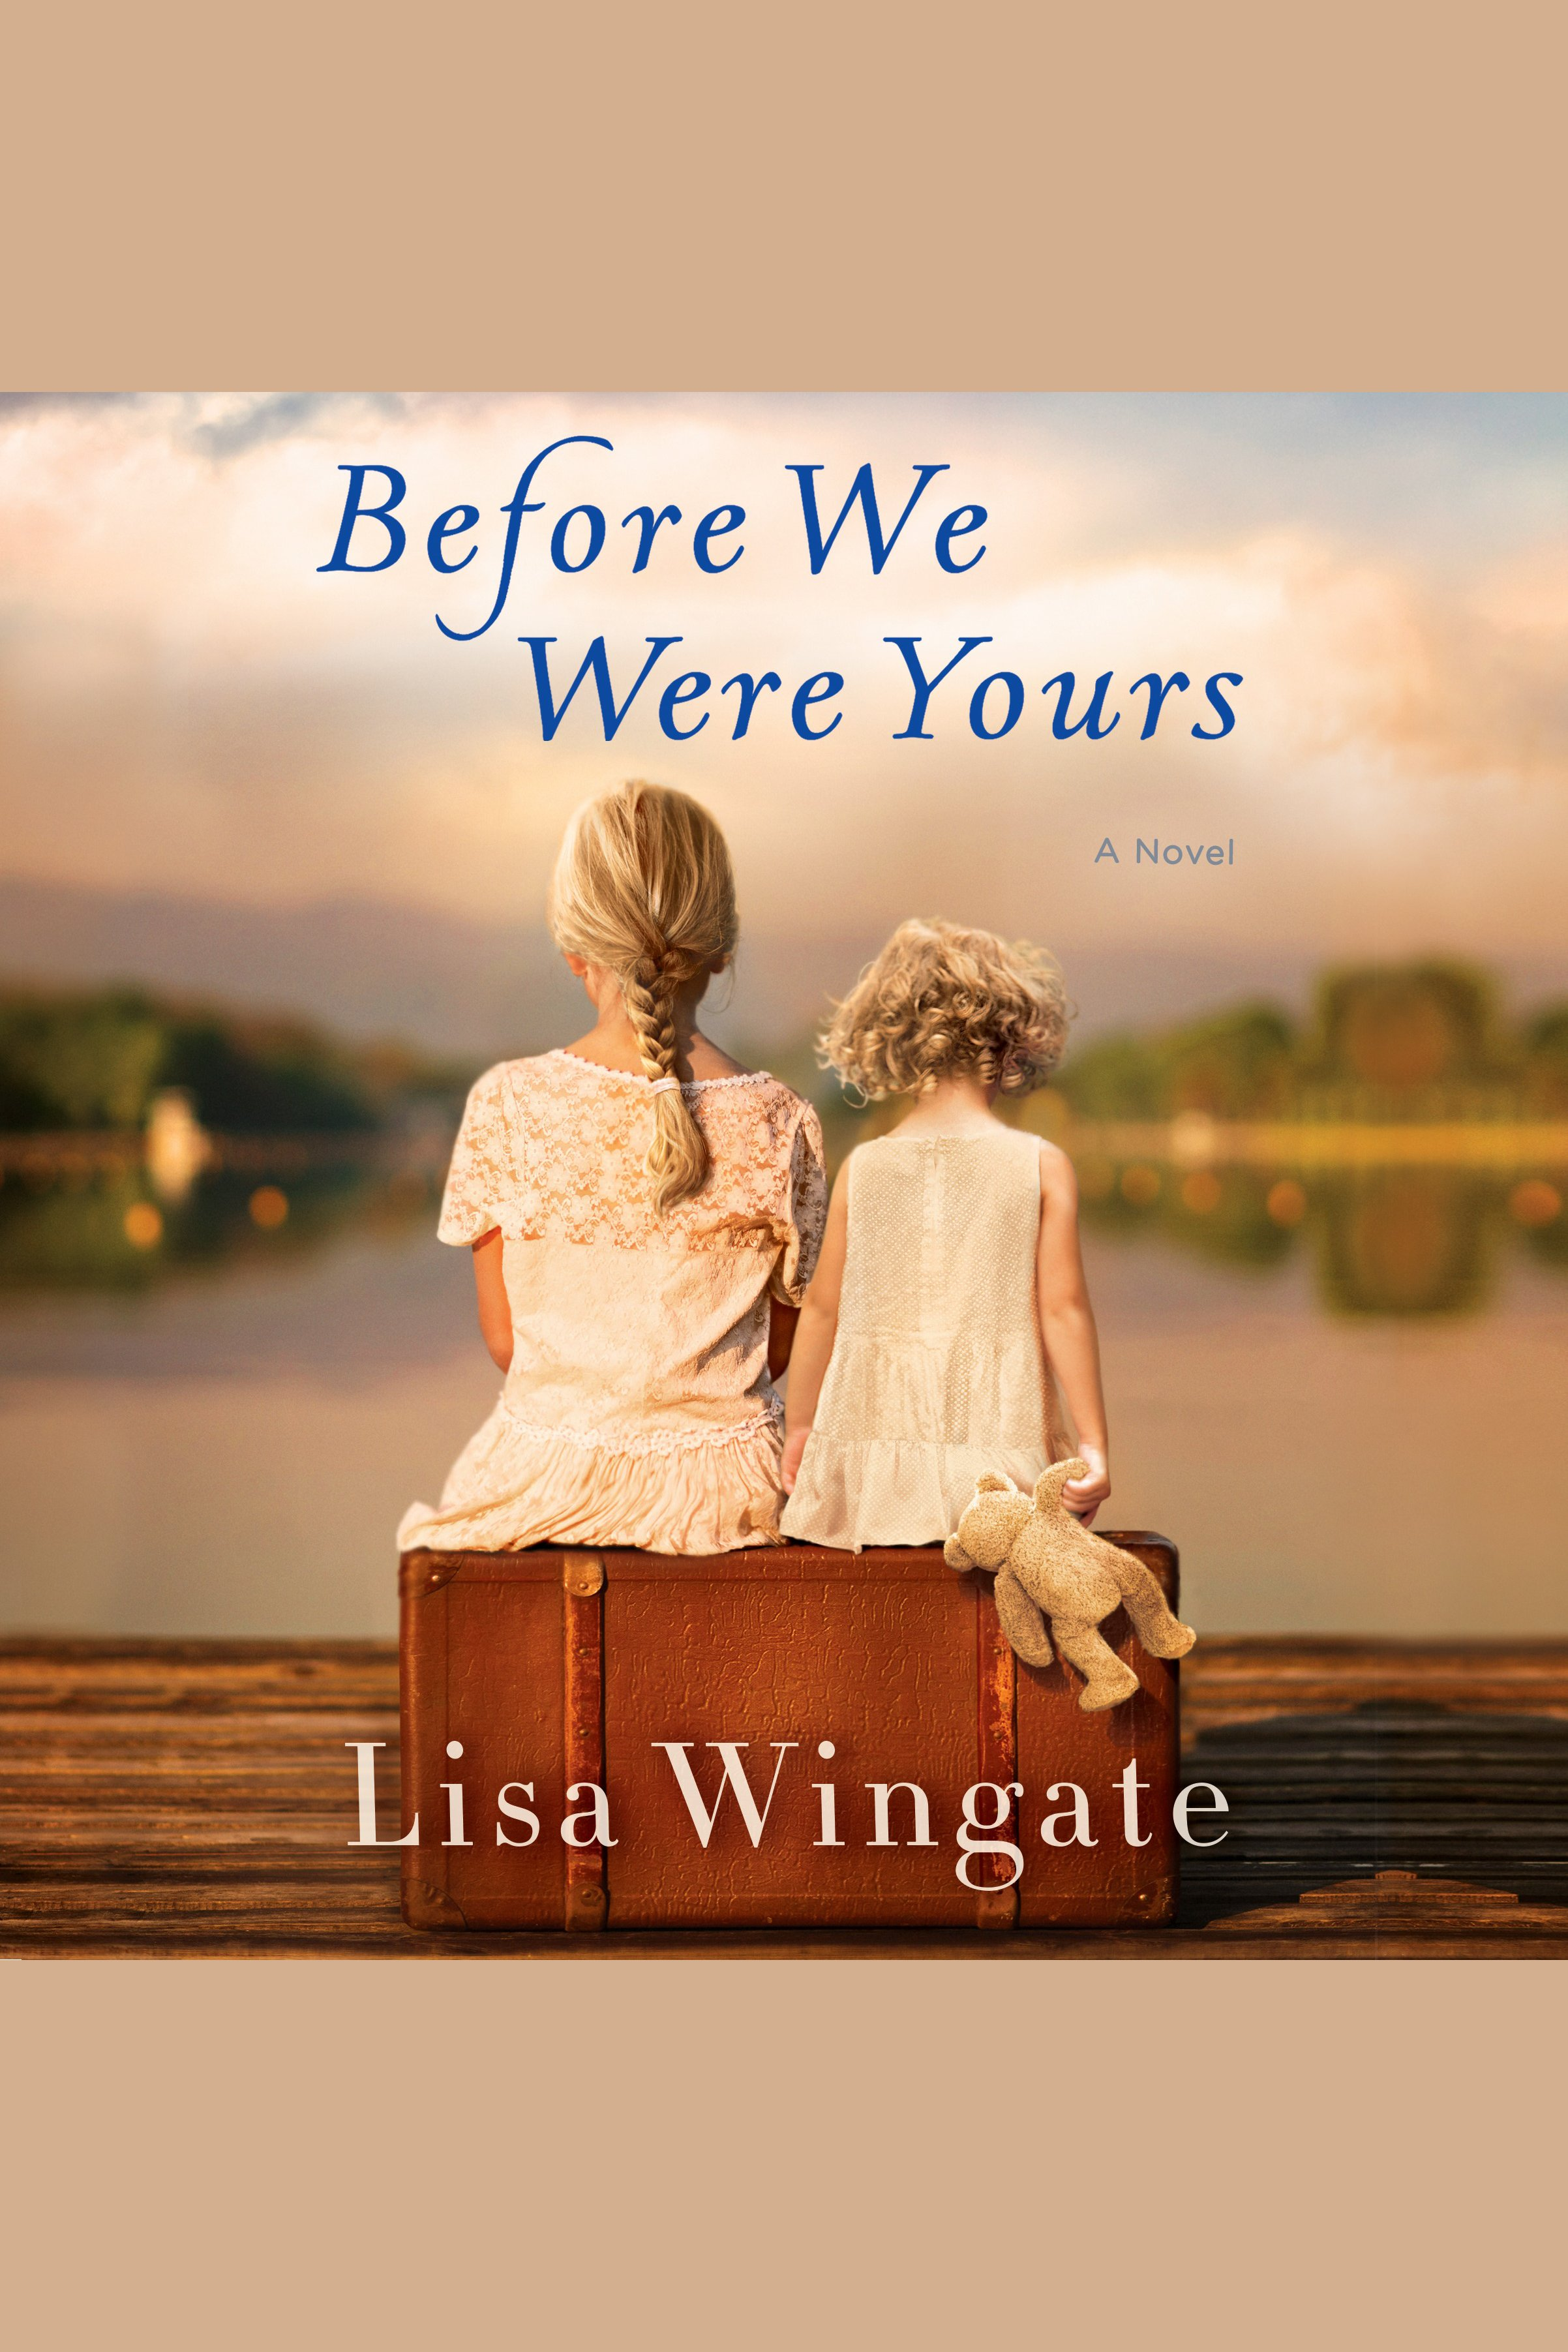 Before we were yours [AudioEbook] : a novel